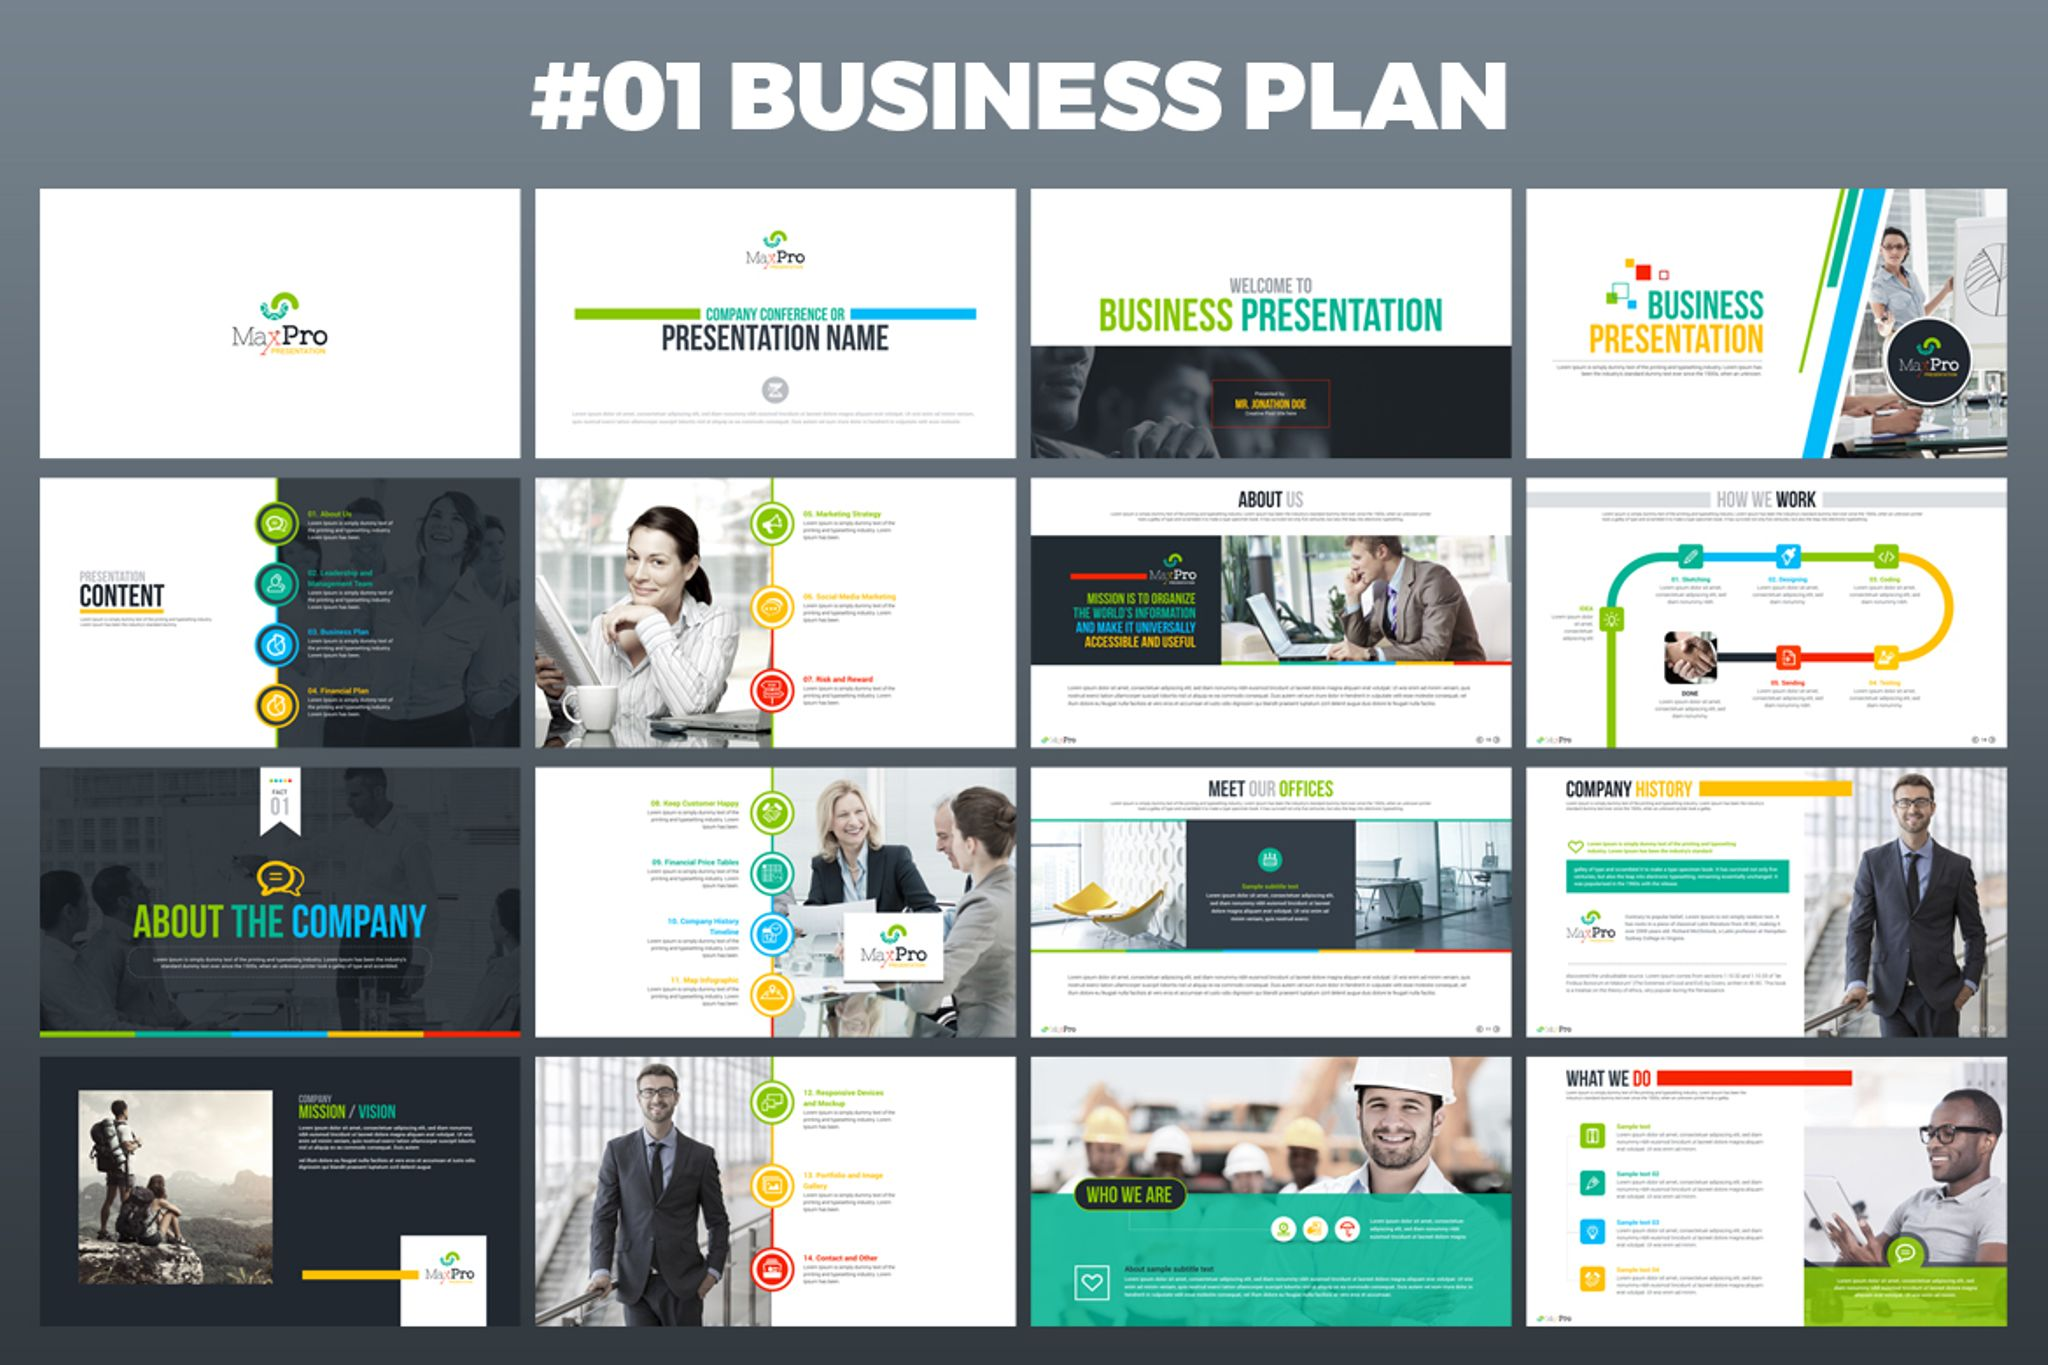 Maxpro business plan powerpoint template 66751 maxpro business plan powerpoint template big screenshot flashek Choice Image